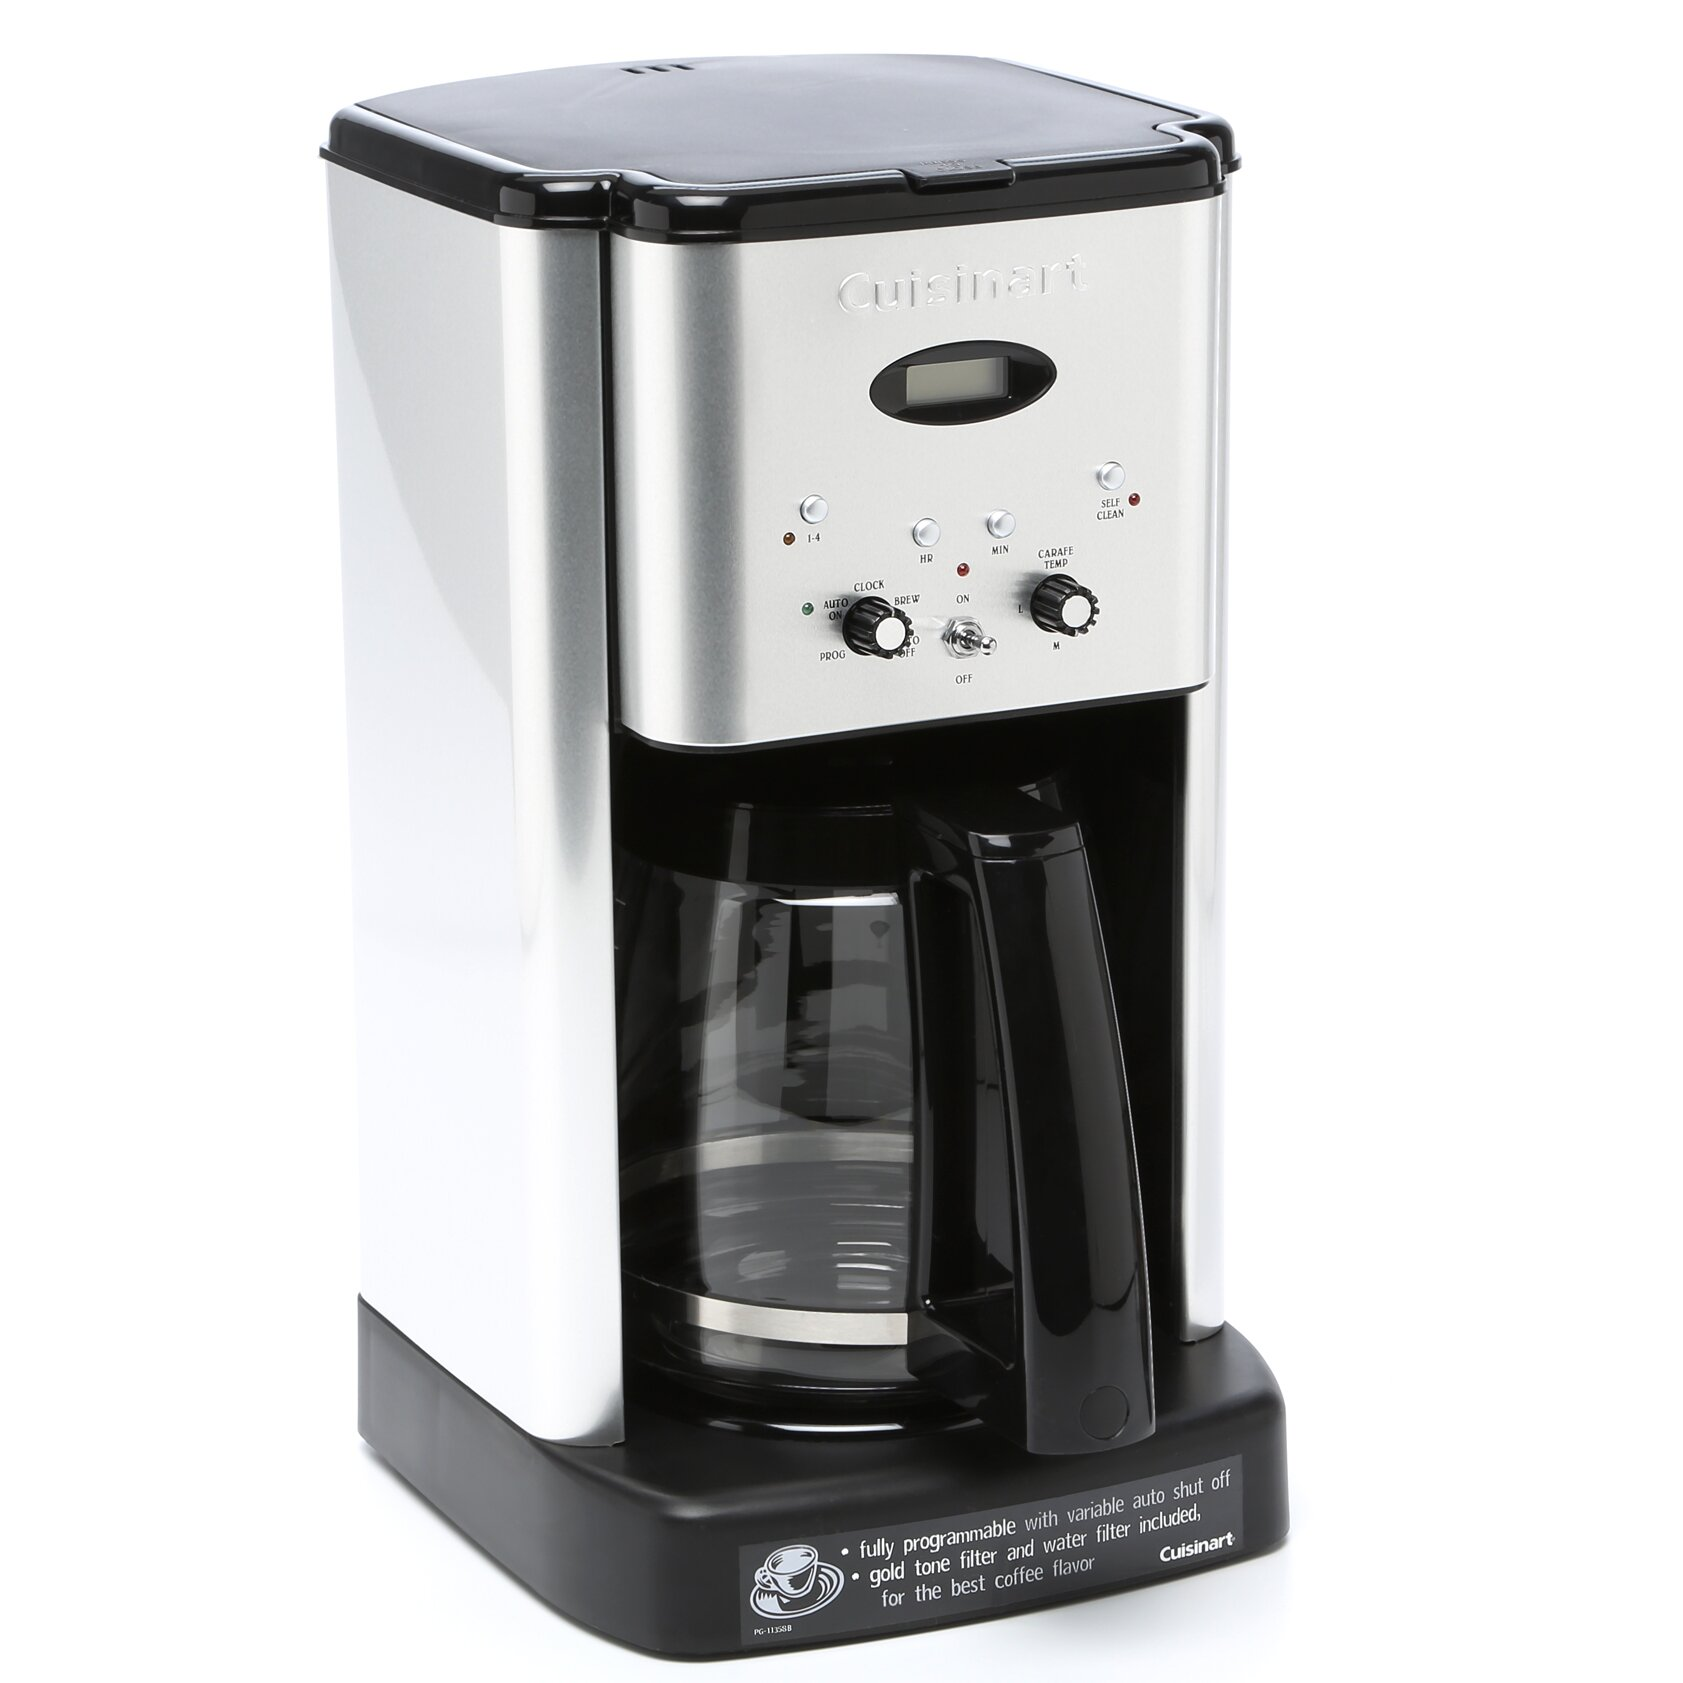 Cuisinart Coffee Maker Fire : Cuisinart 12 Cup Brew Central Programmable Coffee Maker & Reviews Wayfair